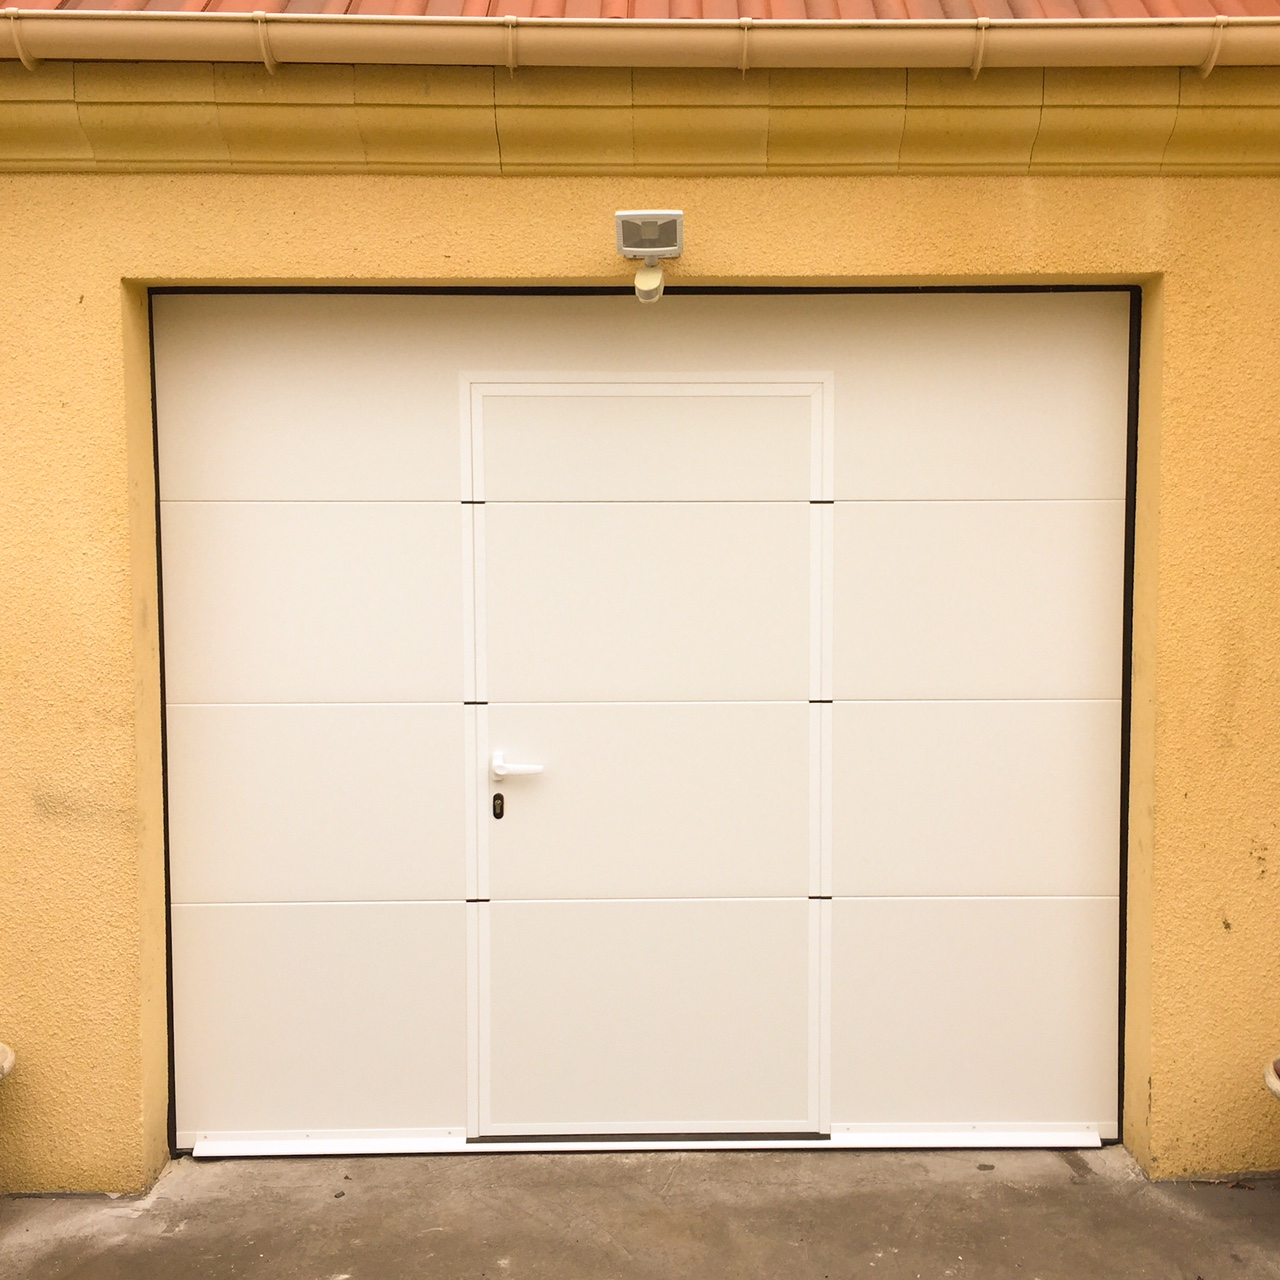 Porte sectionnelle lisse blanc avec portillon int gr - Porte de garage portillon integre ...